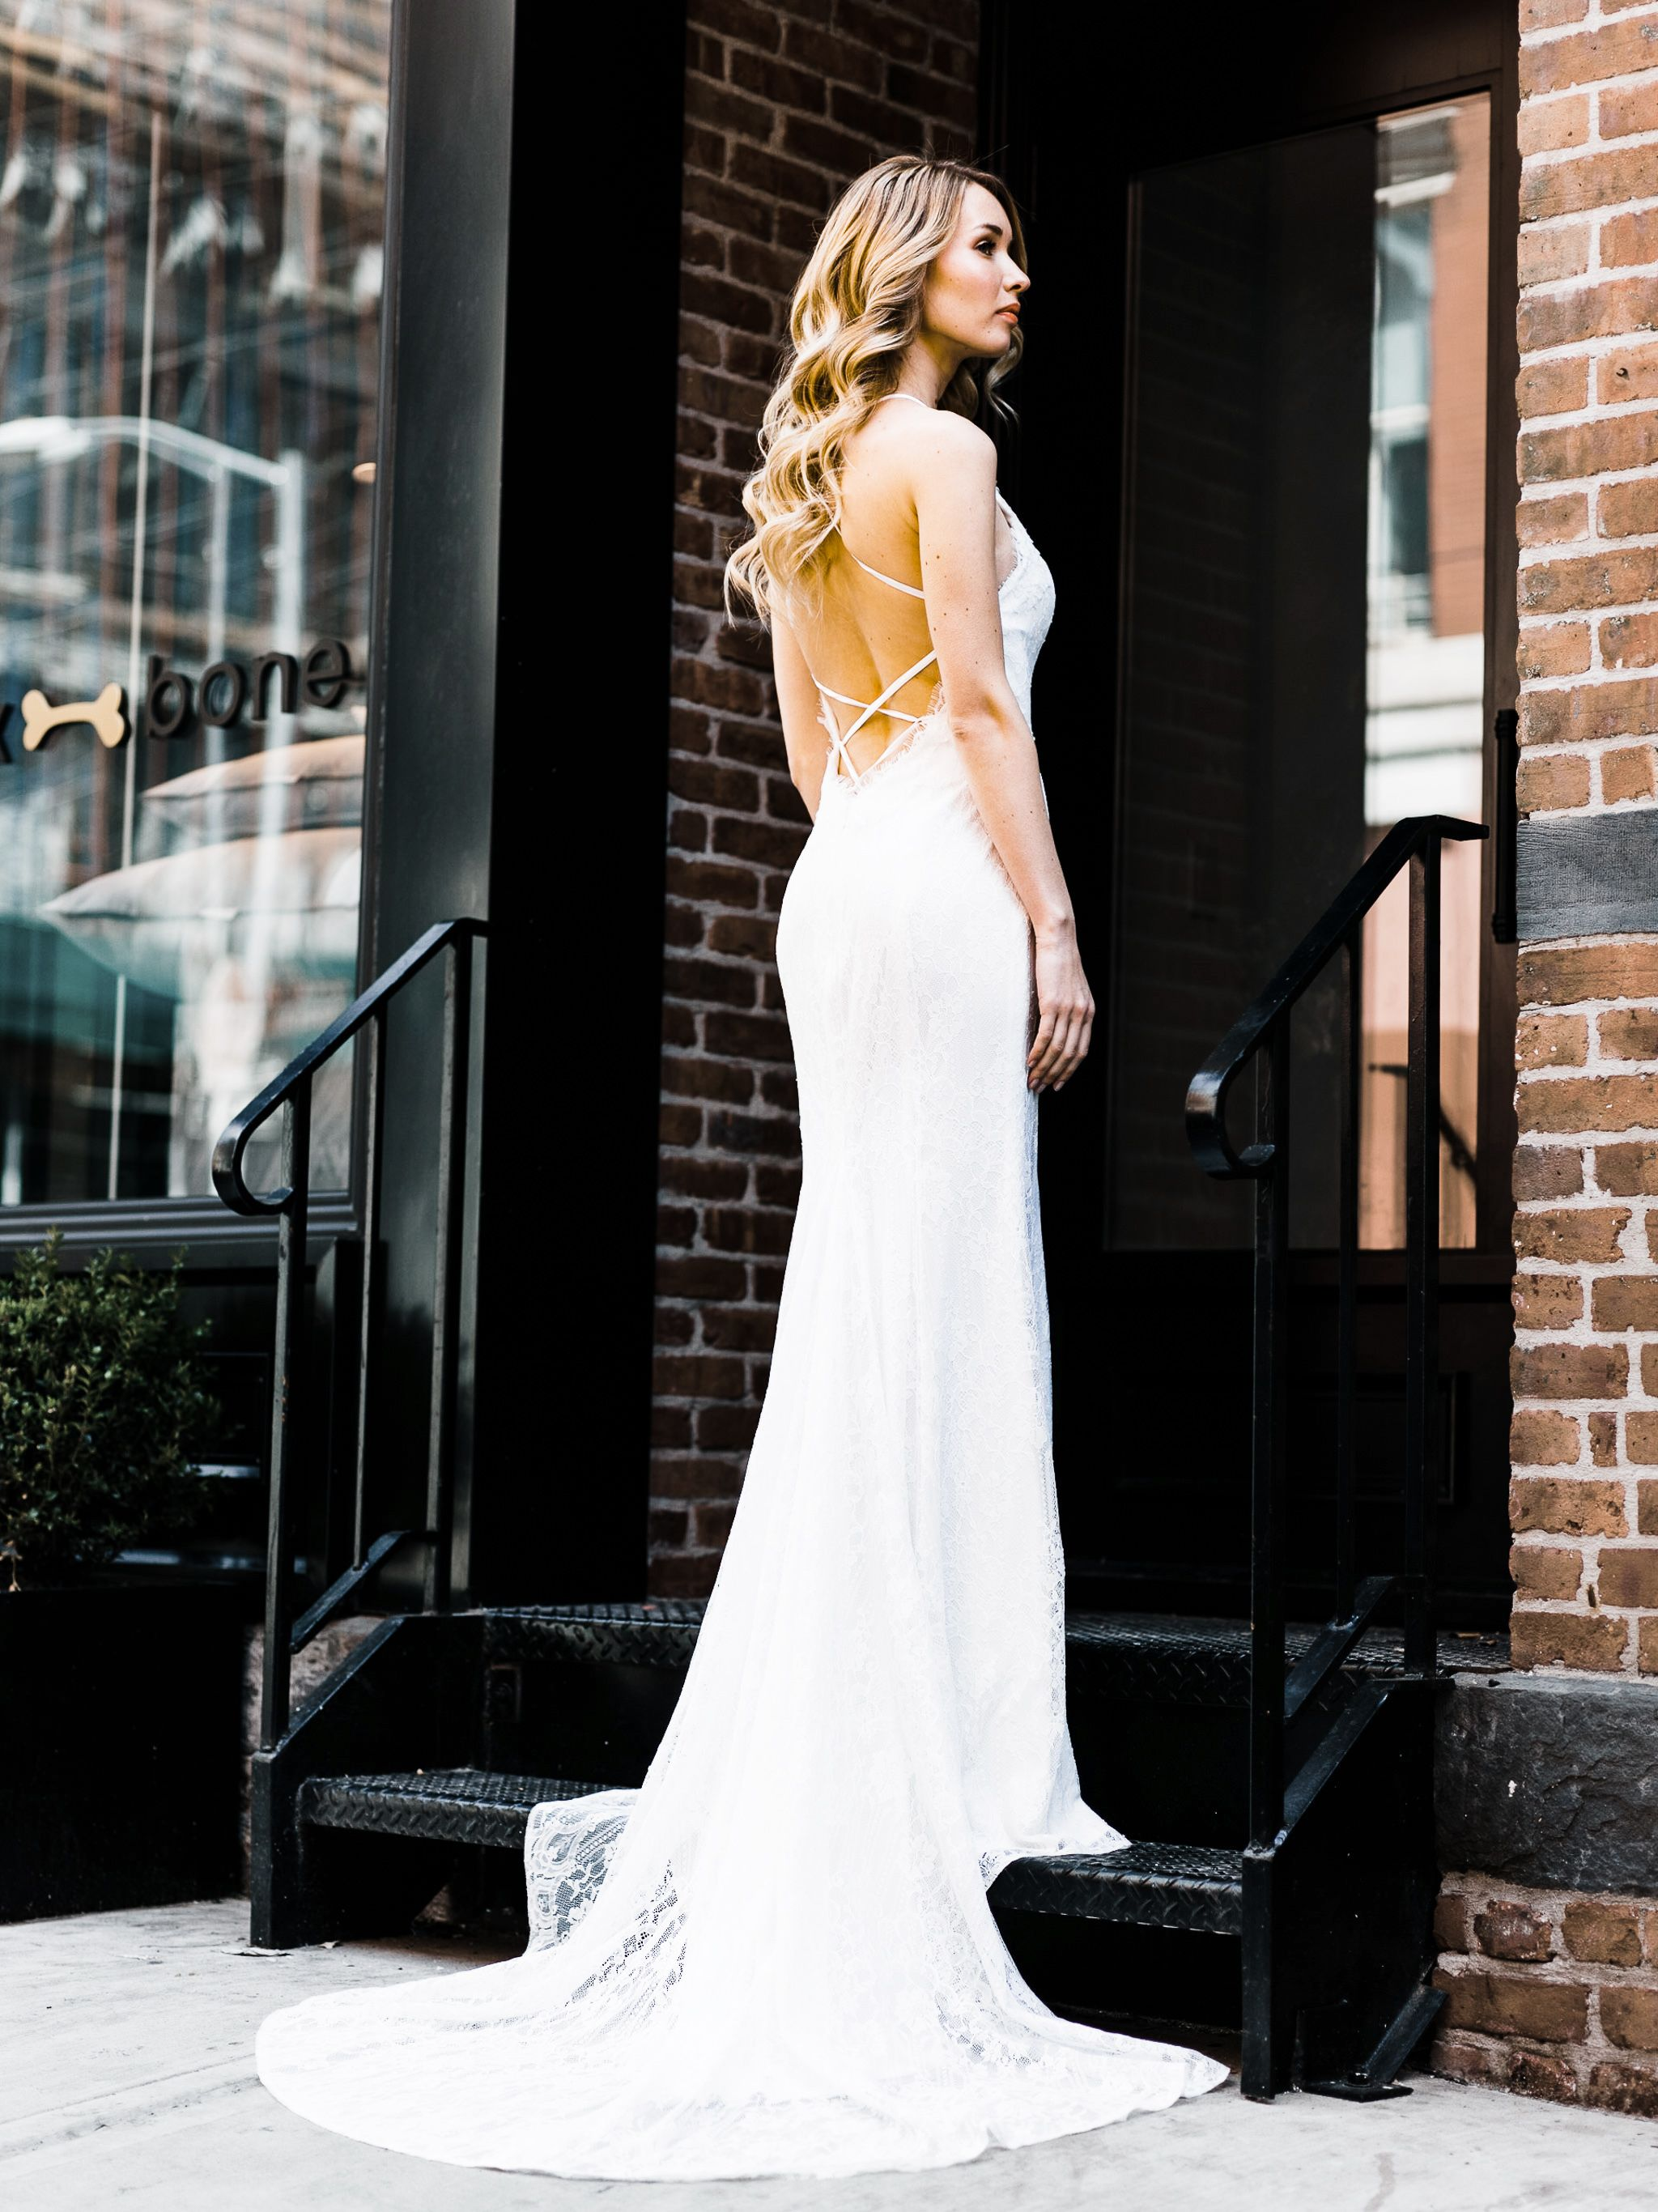 Angelina lace up bridal gown by goddess by nature wedding dresses